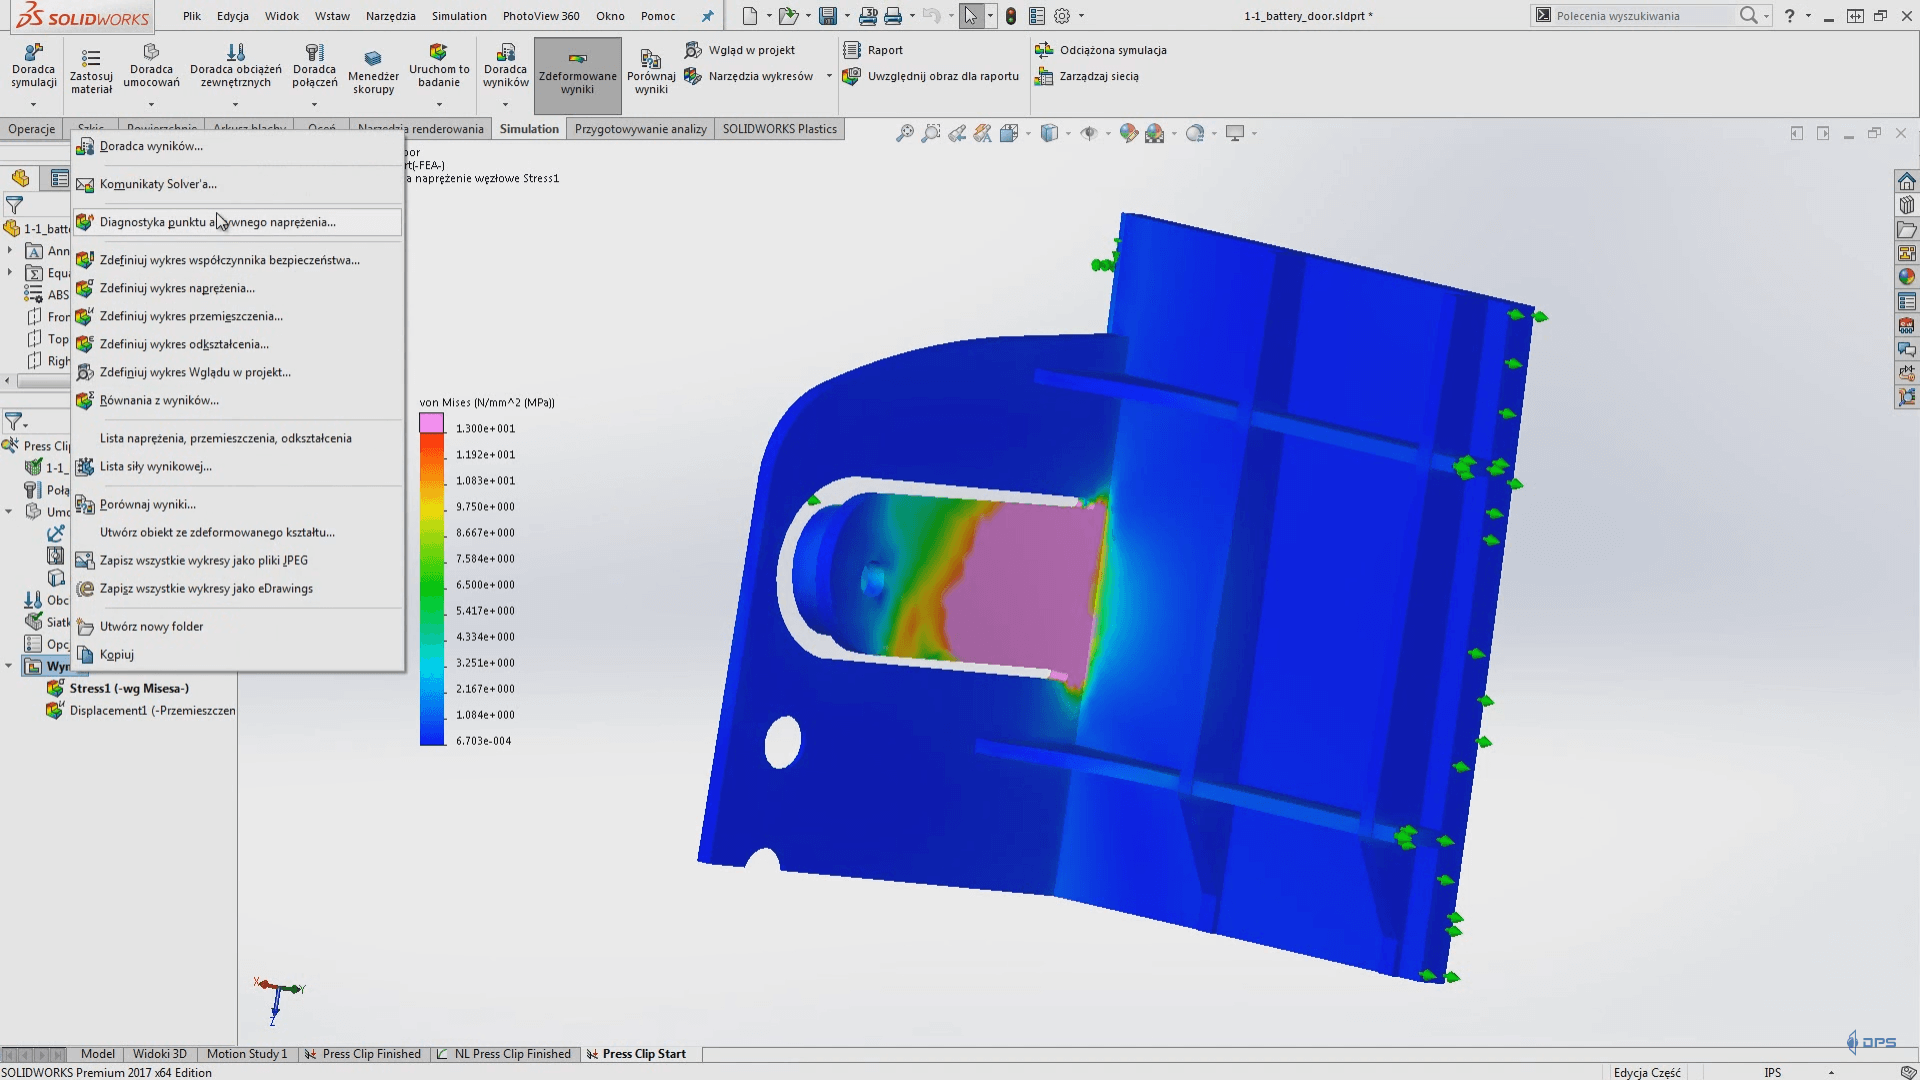 solidworks simulation 2017 wyniki